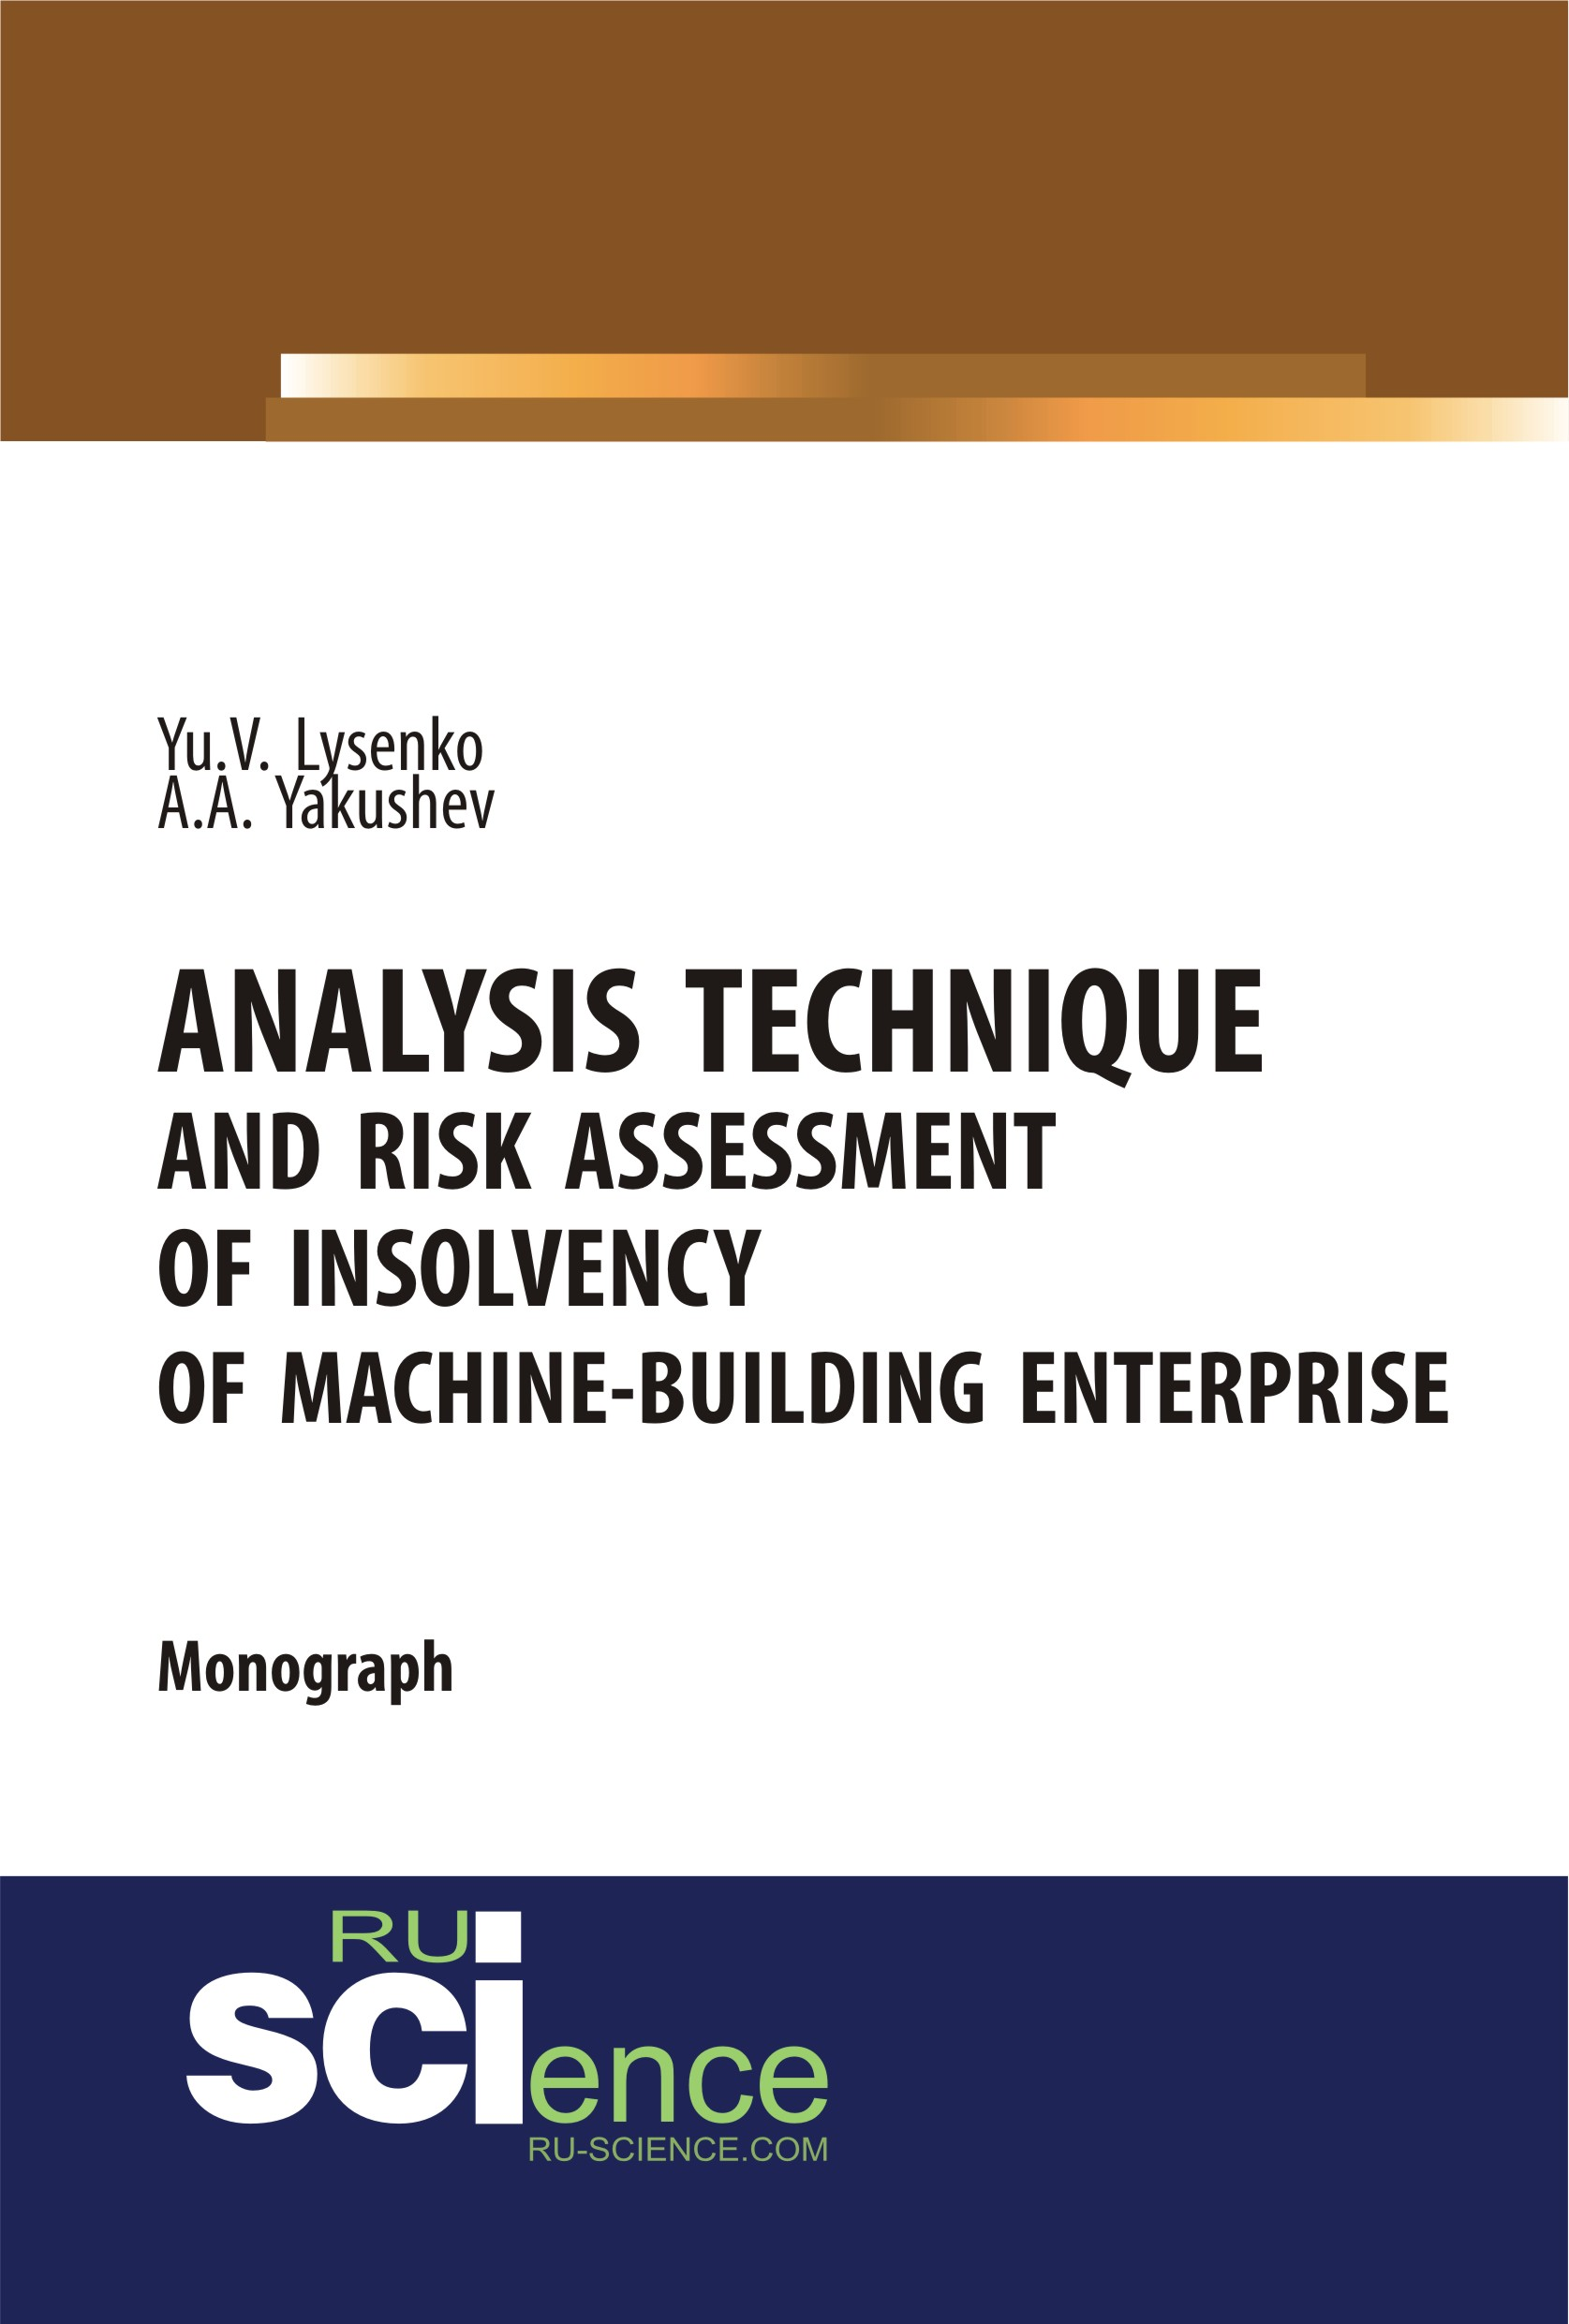 Фото - Ю. В. Лысенко Analysis technique and risk assessment of insolvency of machine-building enterprise physico chemical analysis of water of balco area